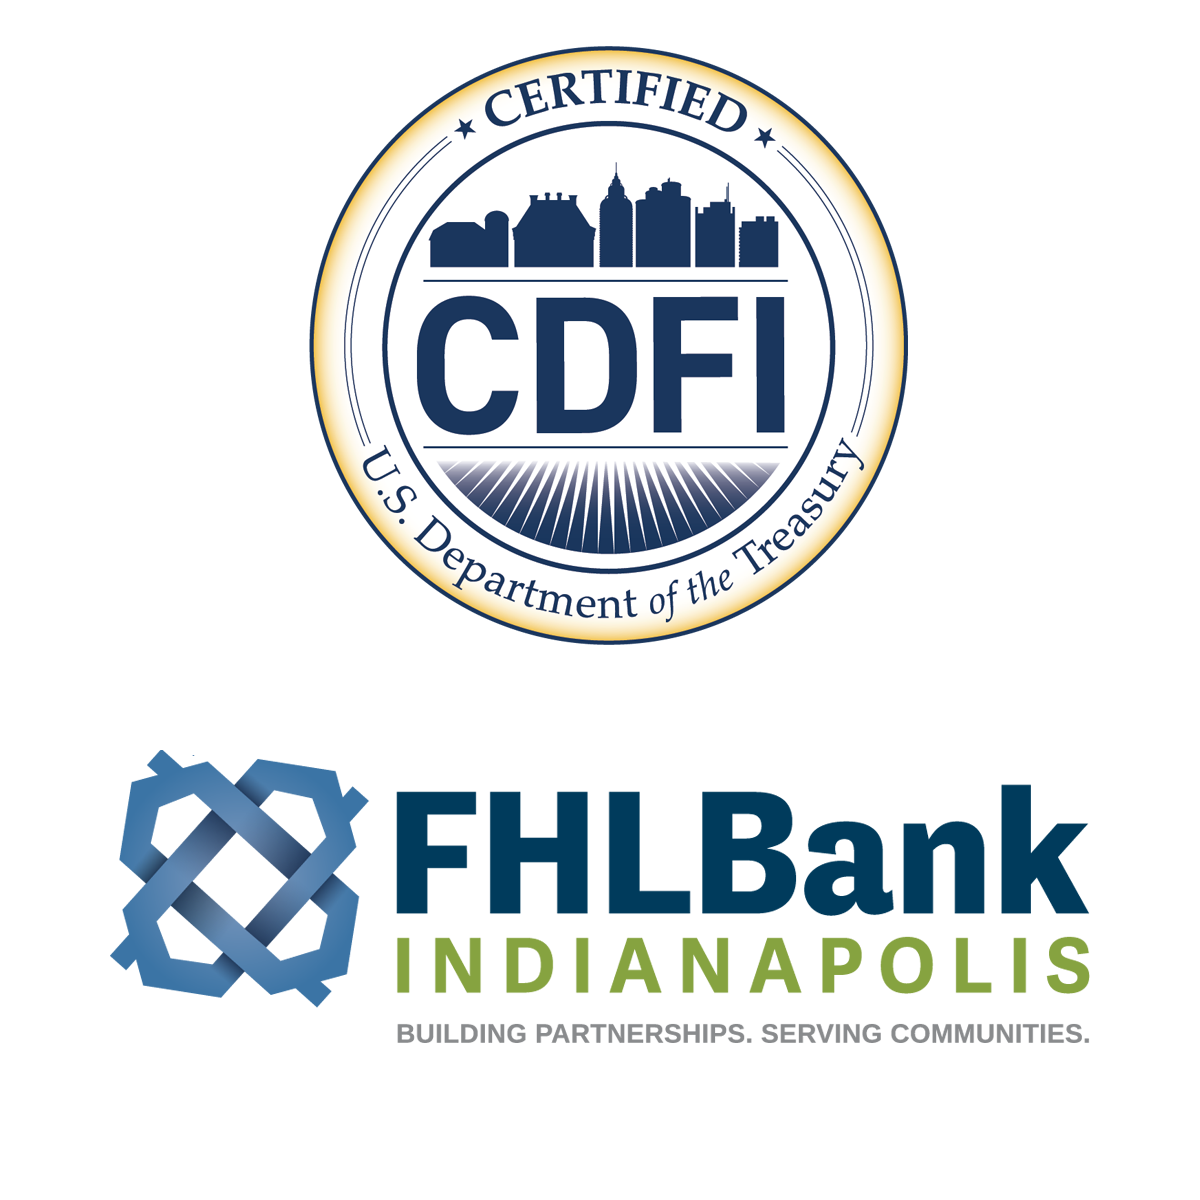 How Cdfis Benefit America By Dri Fund A Certified Cdfi